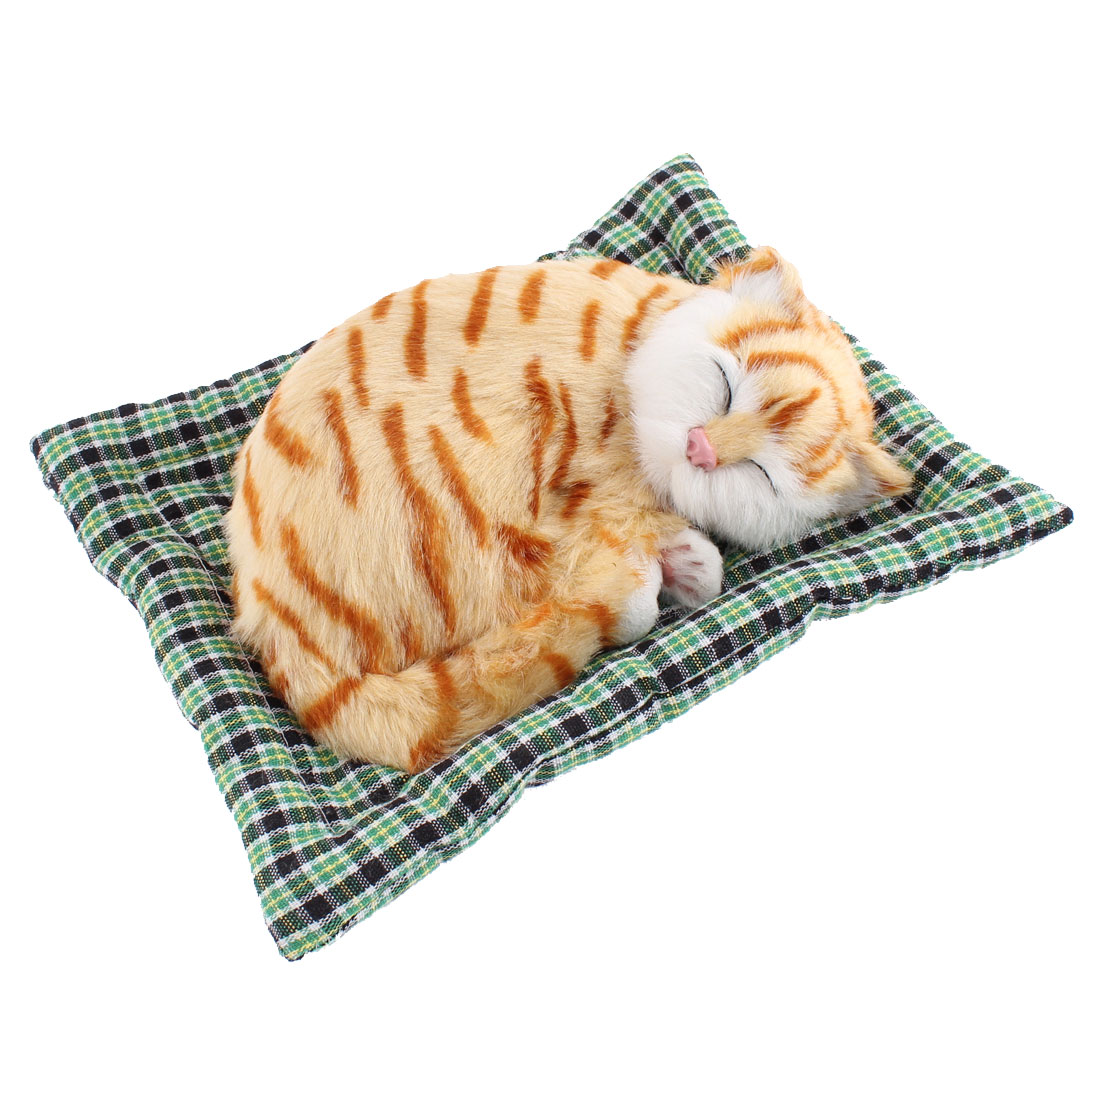 Home Simulation Sound Animal Sleeping Cat Craft Decoration